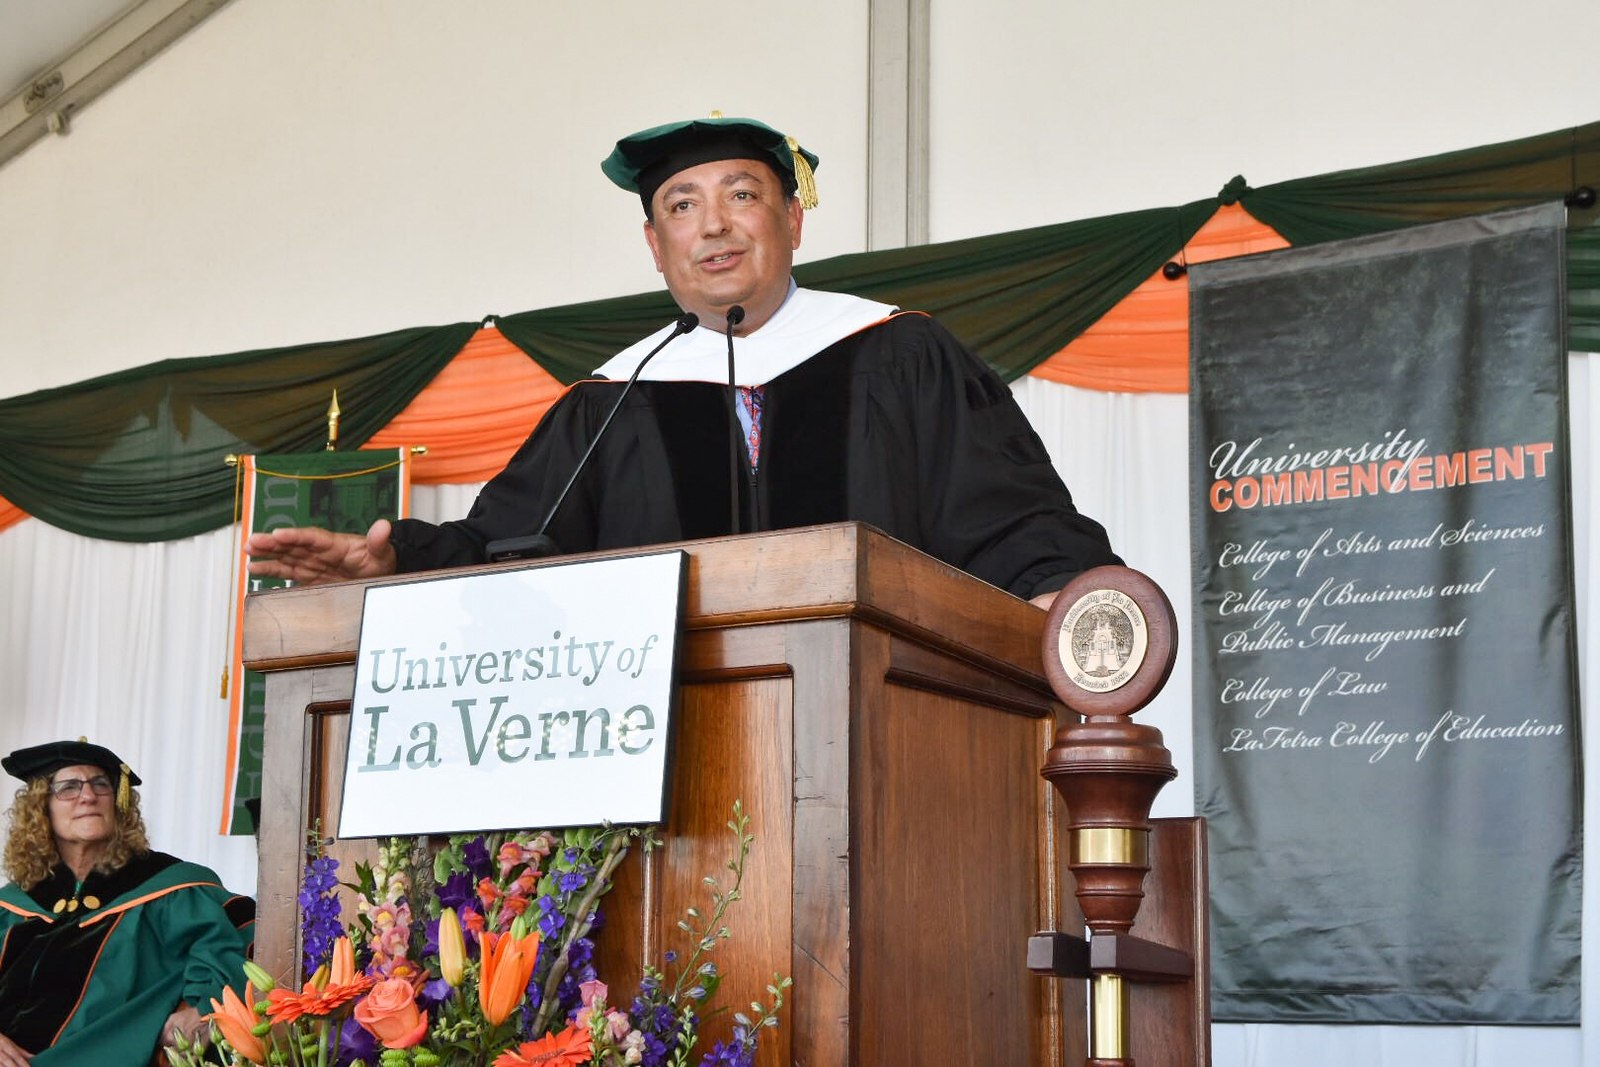 Houston Police Chief Art Acevedo gives the University of La Verne's 2018 commencement address.